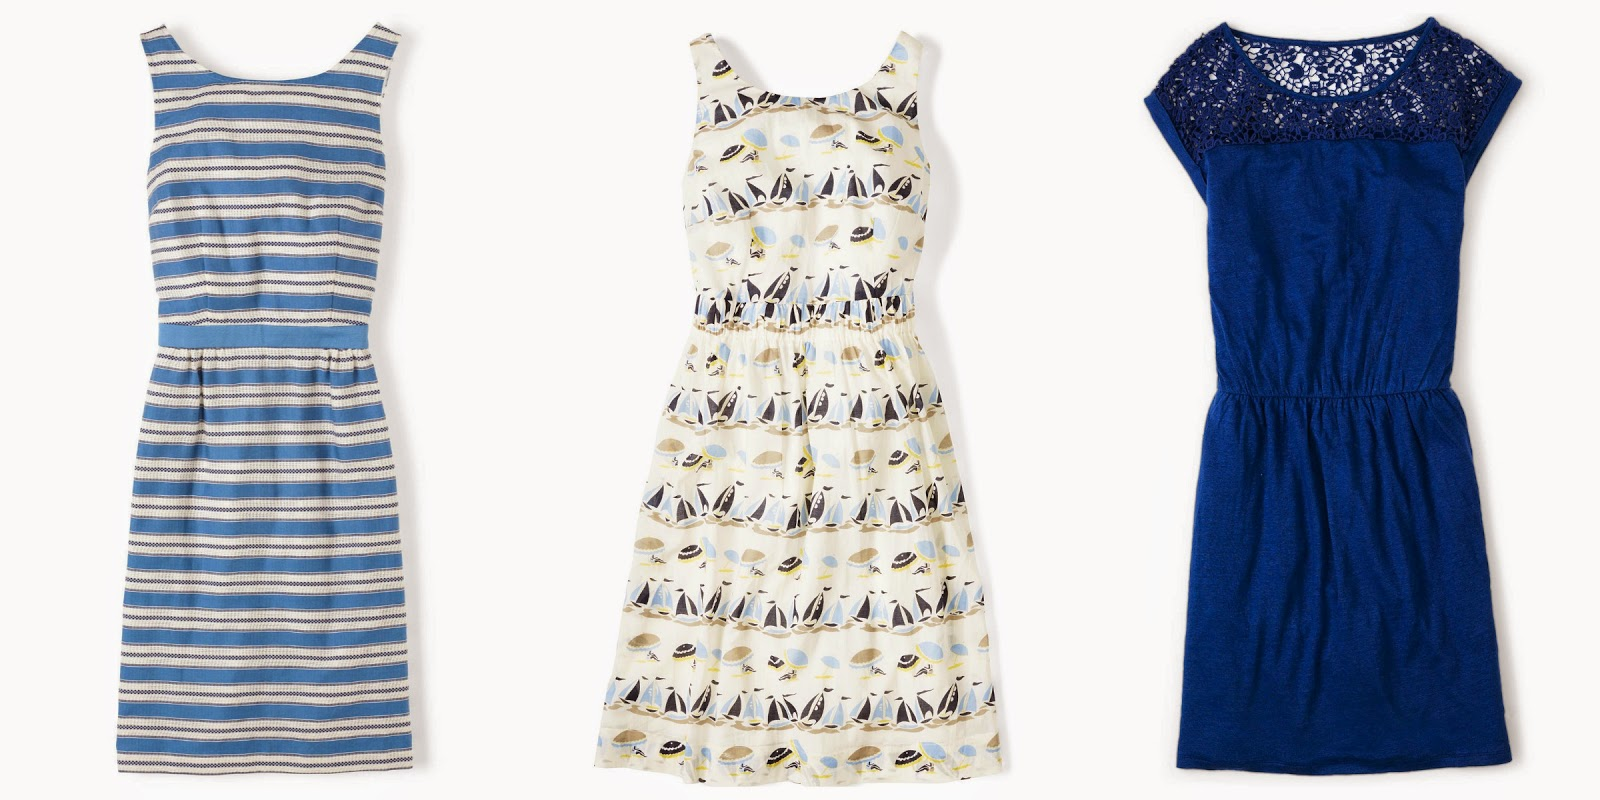 Nautical by Nature | Spring summer dresses